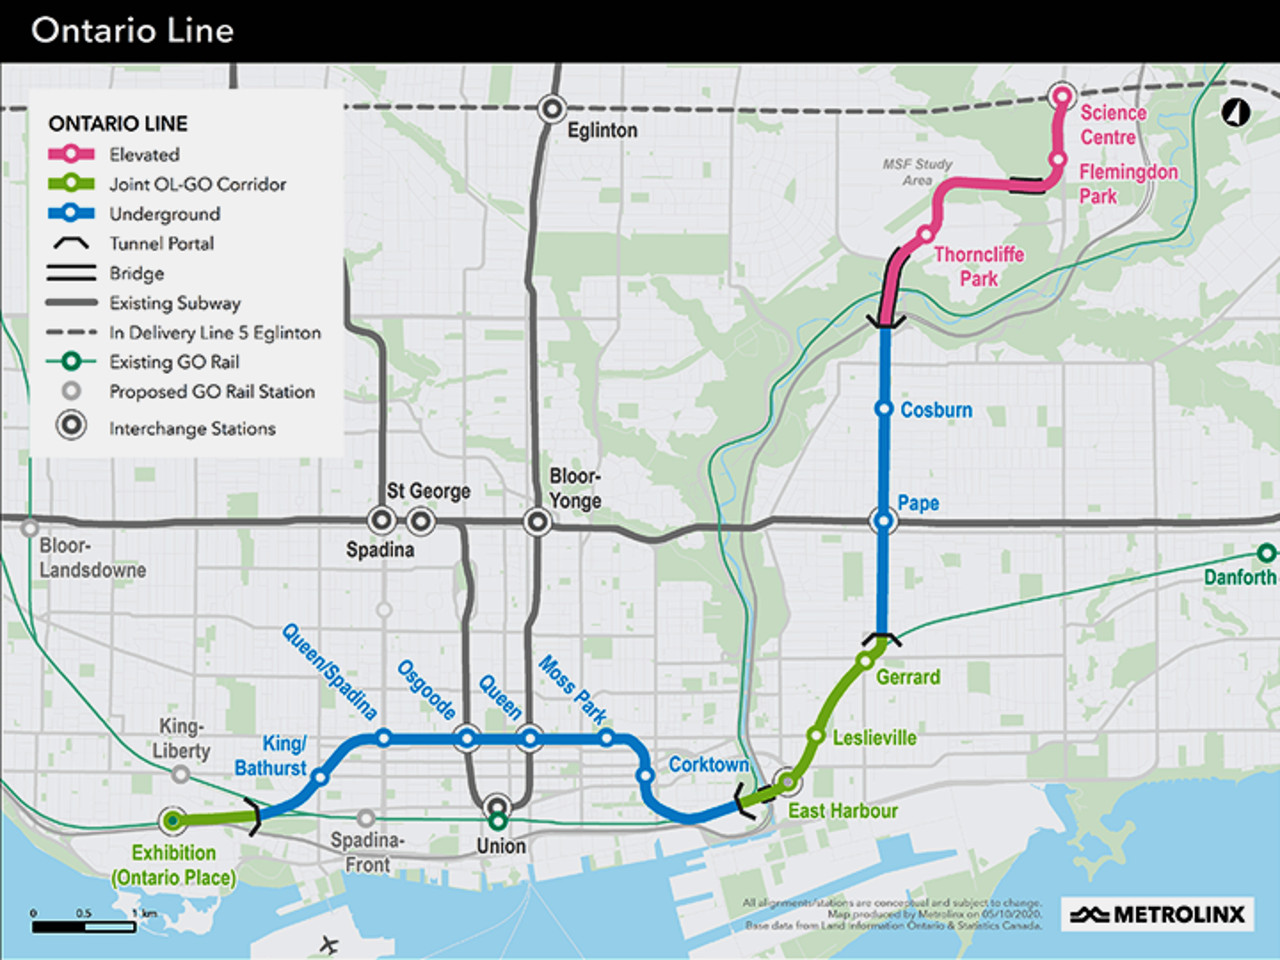 Map of the future Ontario Line